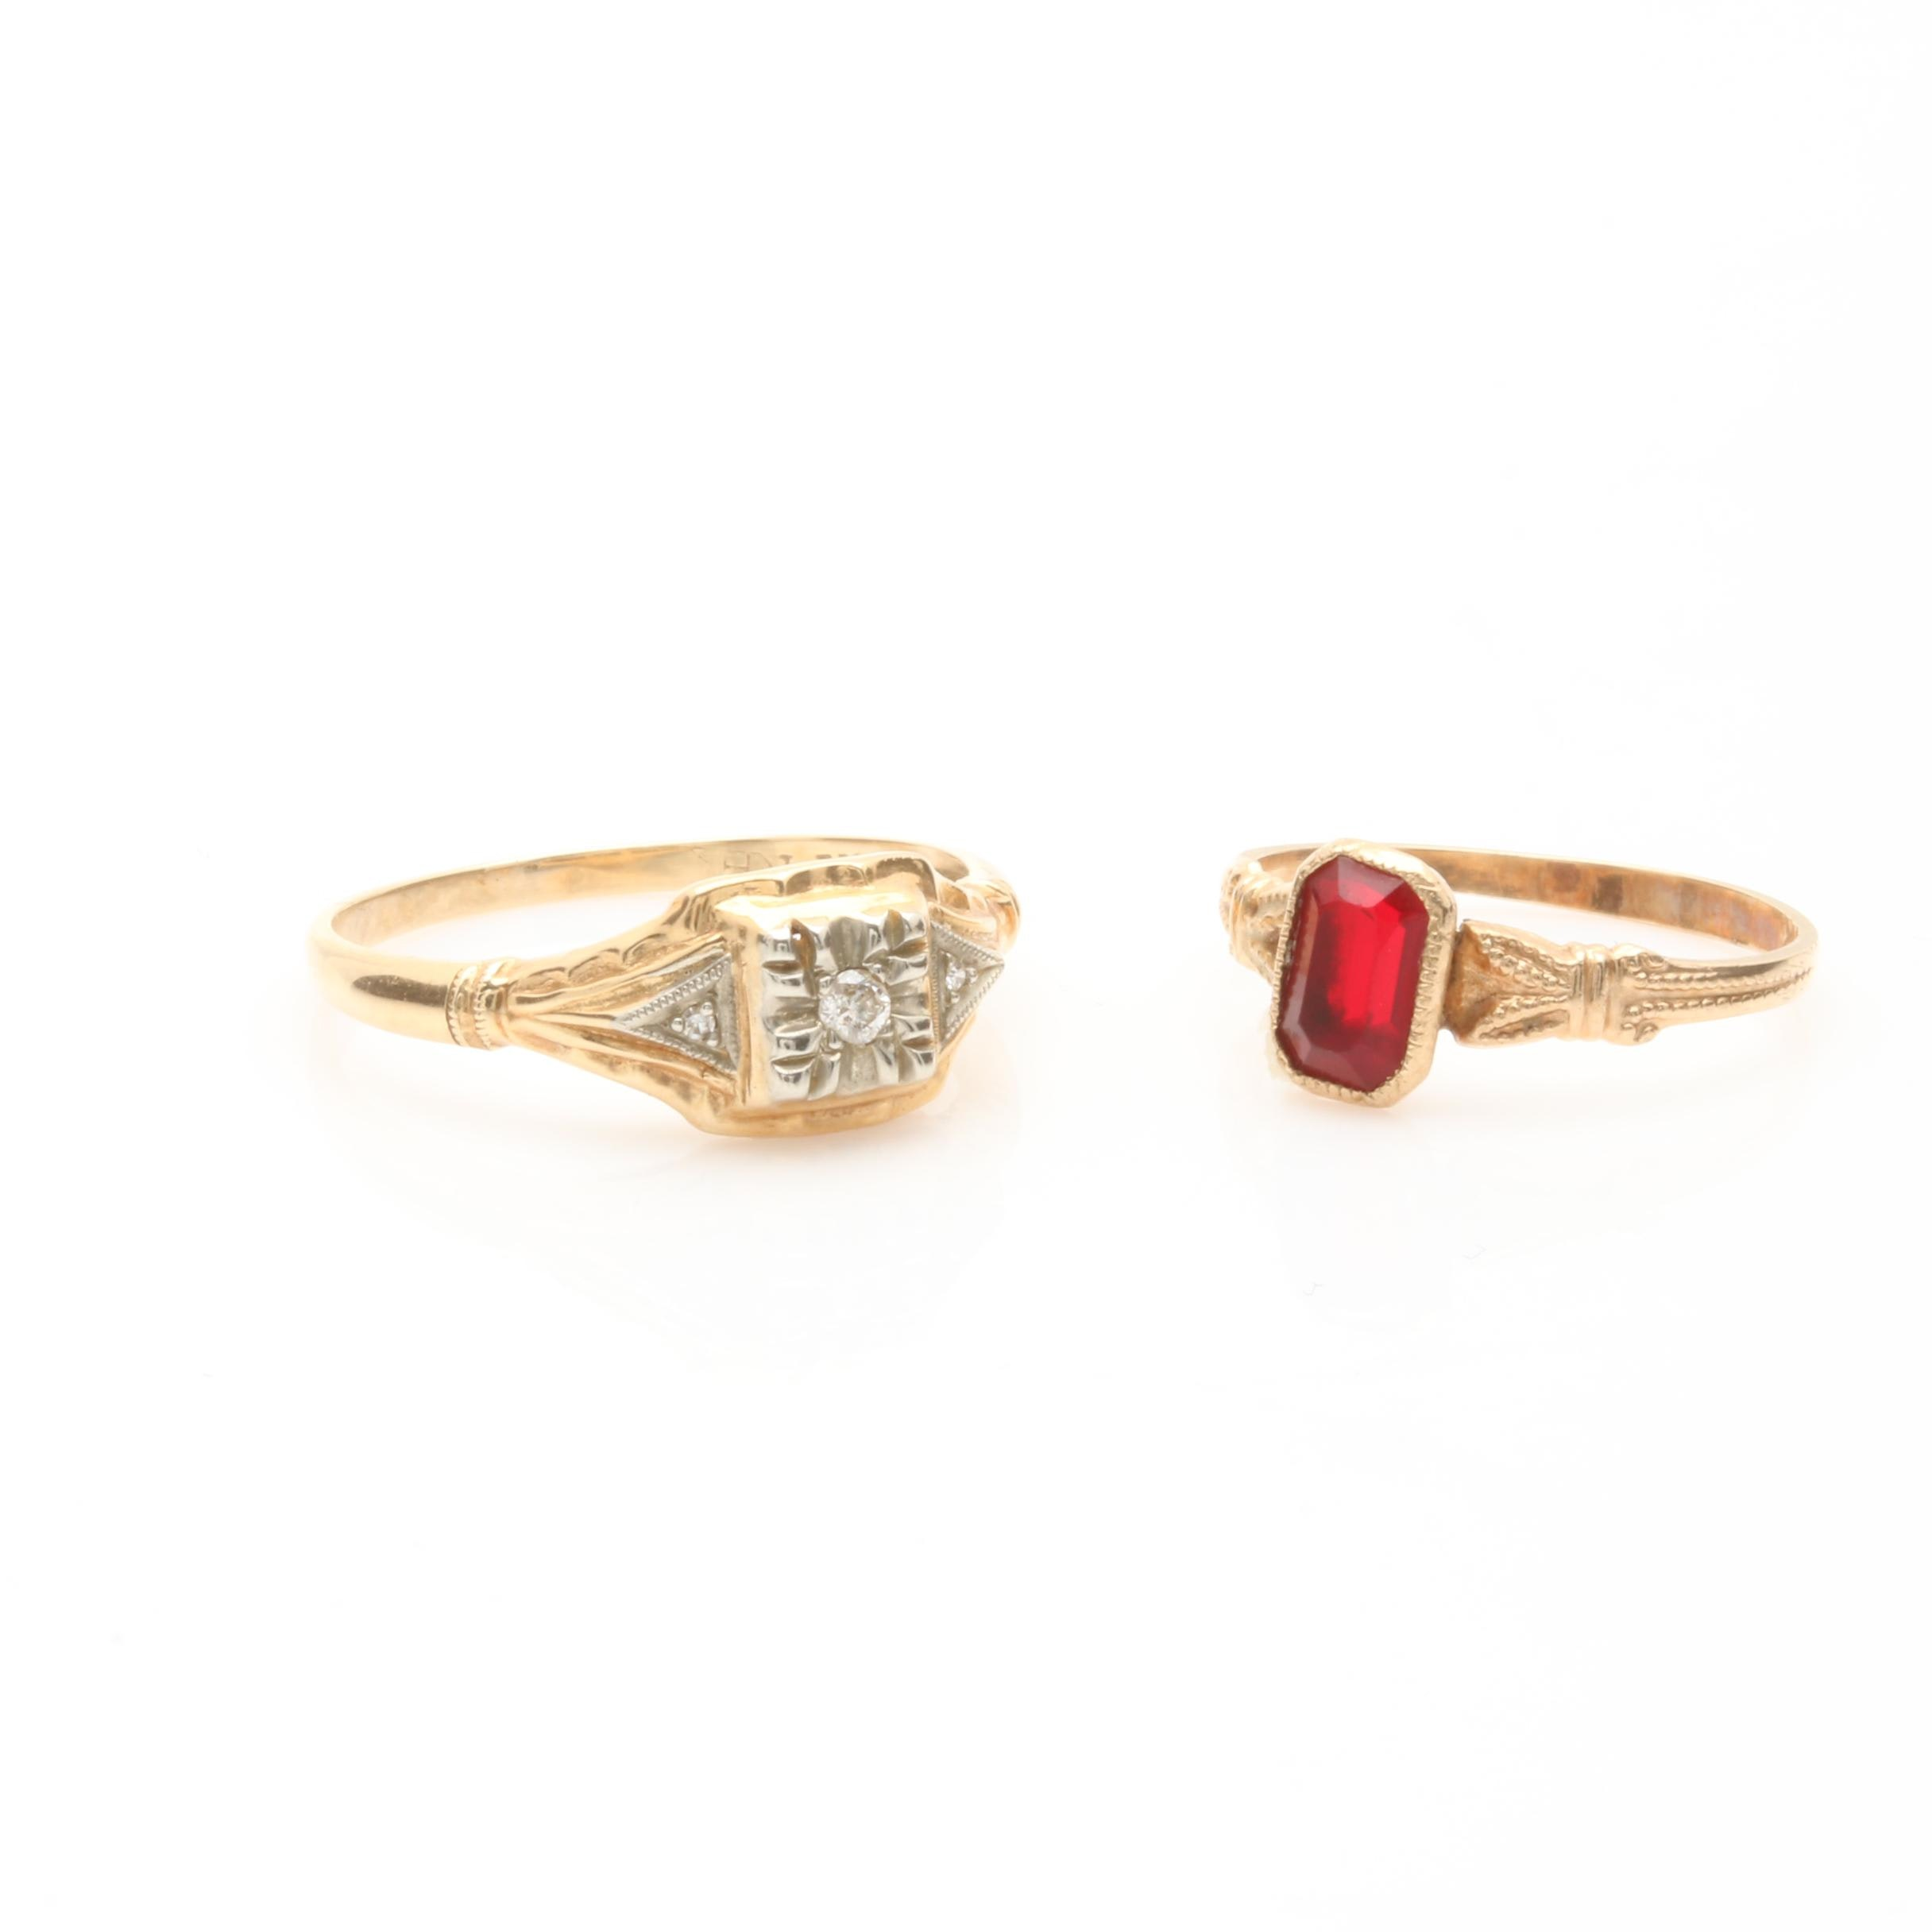 10K and 14K Yellow Gold Diamond and Red Glass Rings